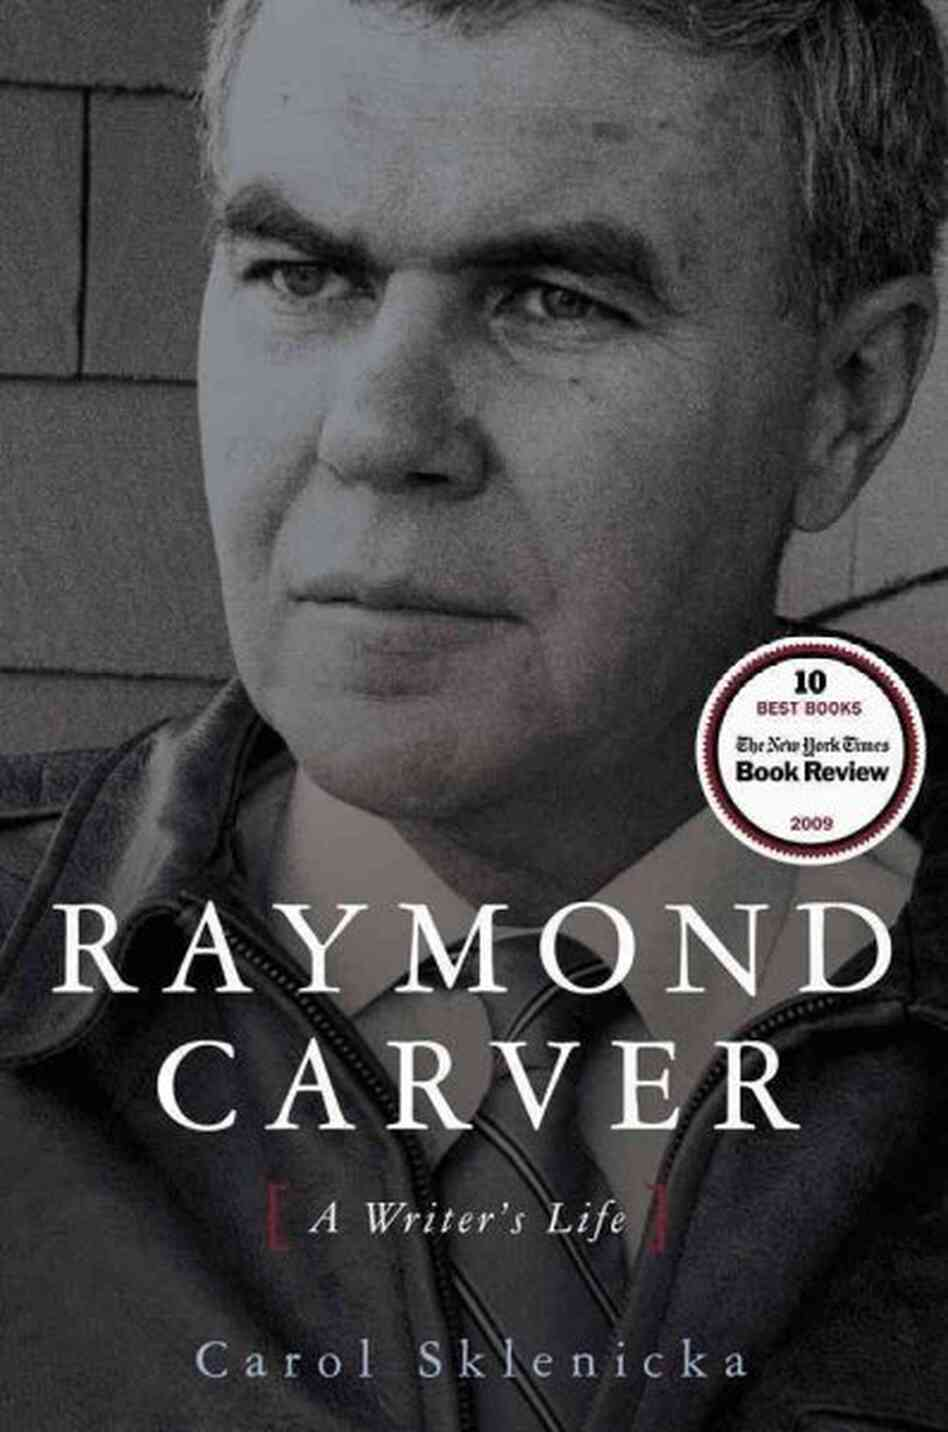 raymond carvers cathedral Postmodernism and minimalism in raymond carver's cathedral - andra  stefanescu - essay - english language and literature studies - literature -  publish.